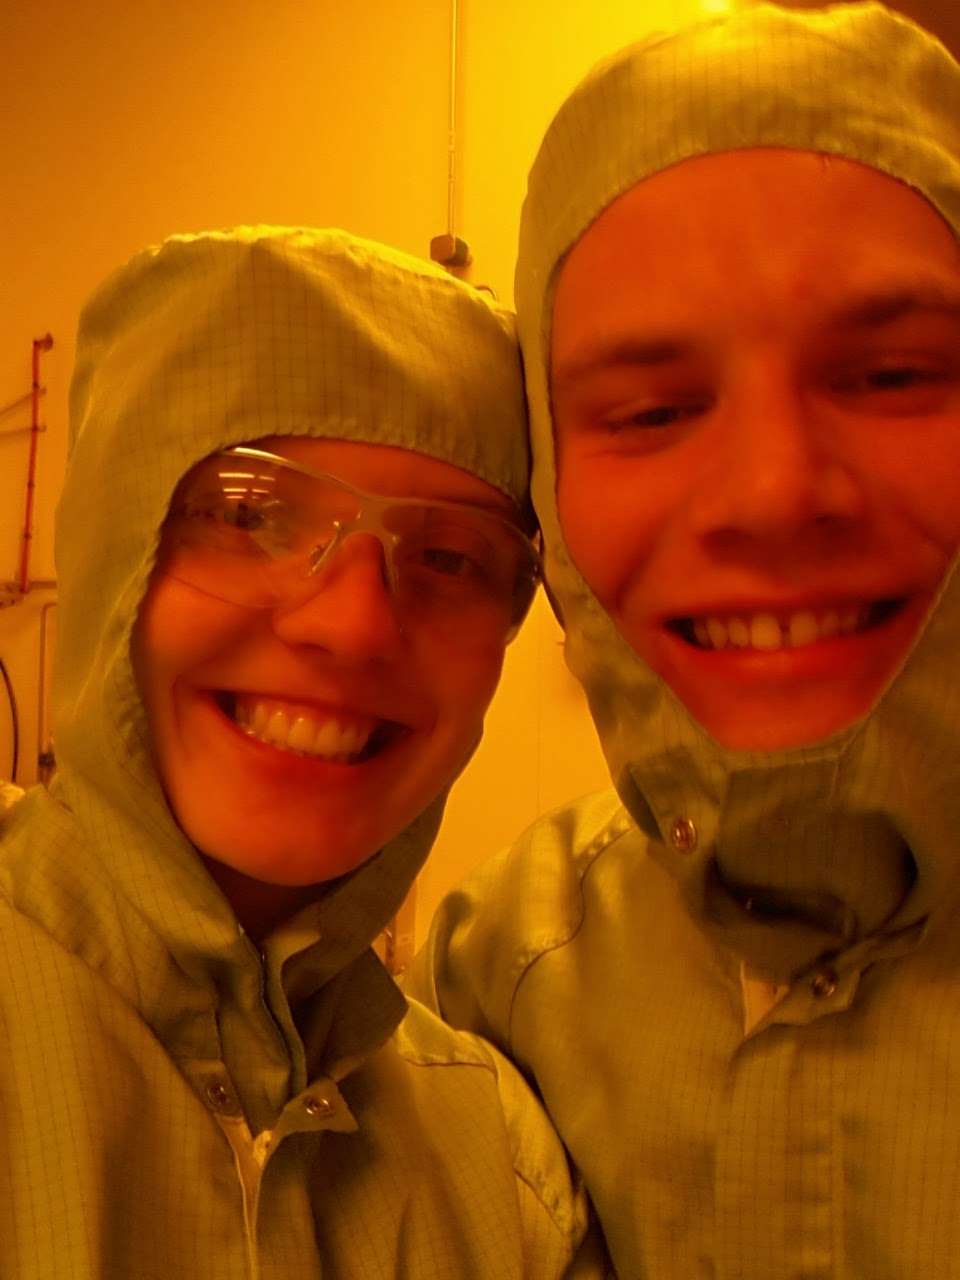 Piotr (one of our process engineers) and I suited up and                                              ready to enter the cleanroom.